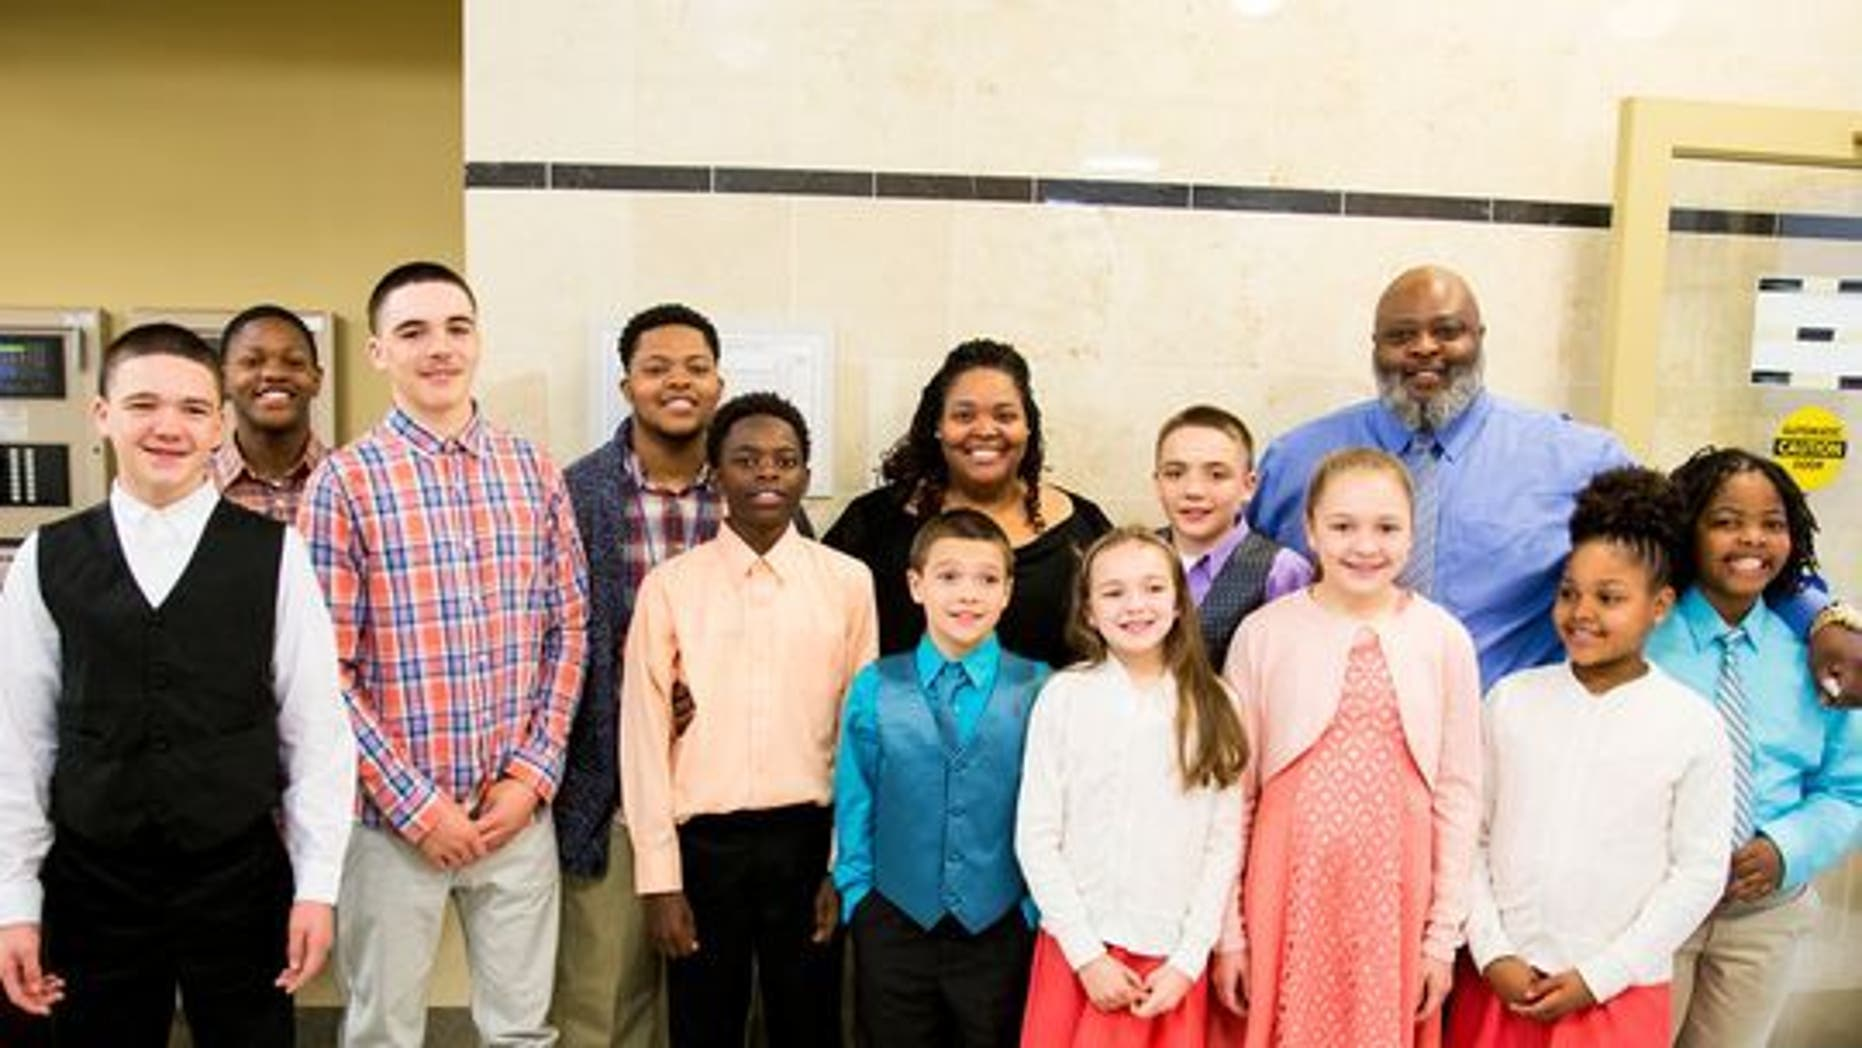 Christopher and Christina Sanders adopted six foster children and now have 11 kids. The adoption was finalized on April 27, 2017.